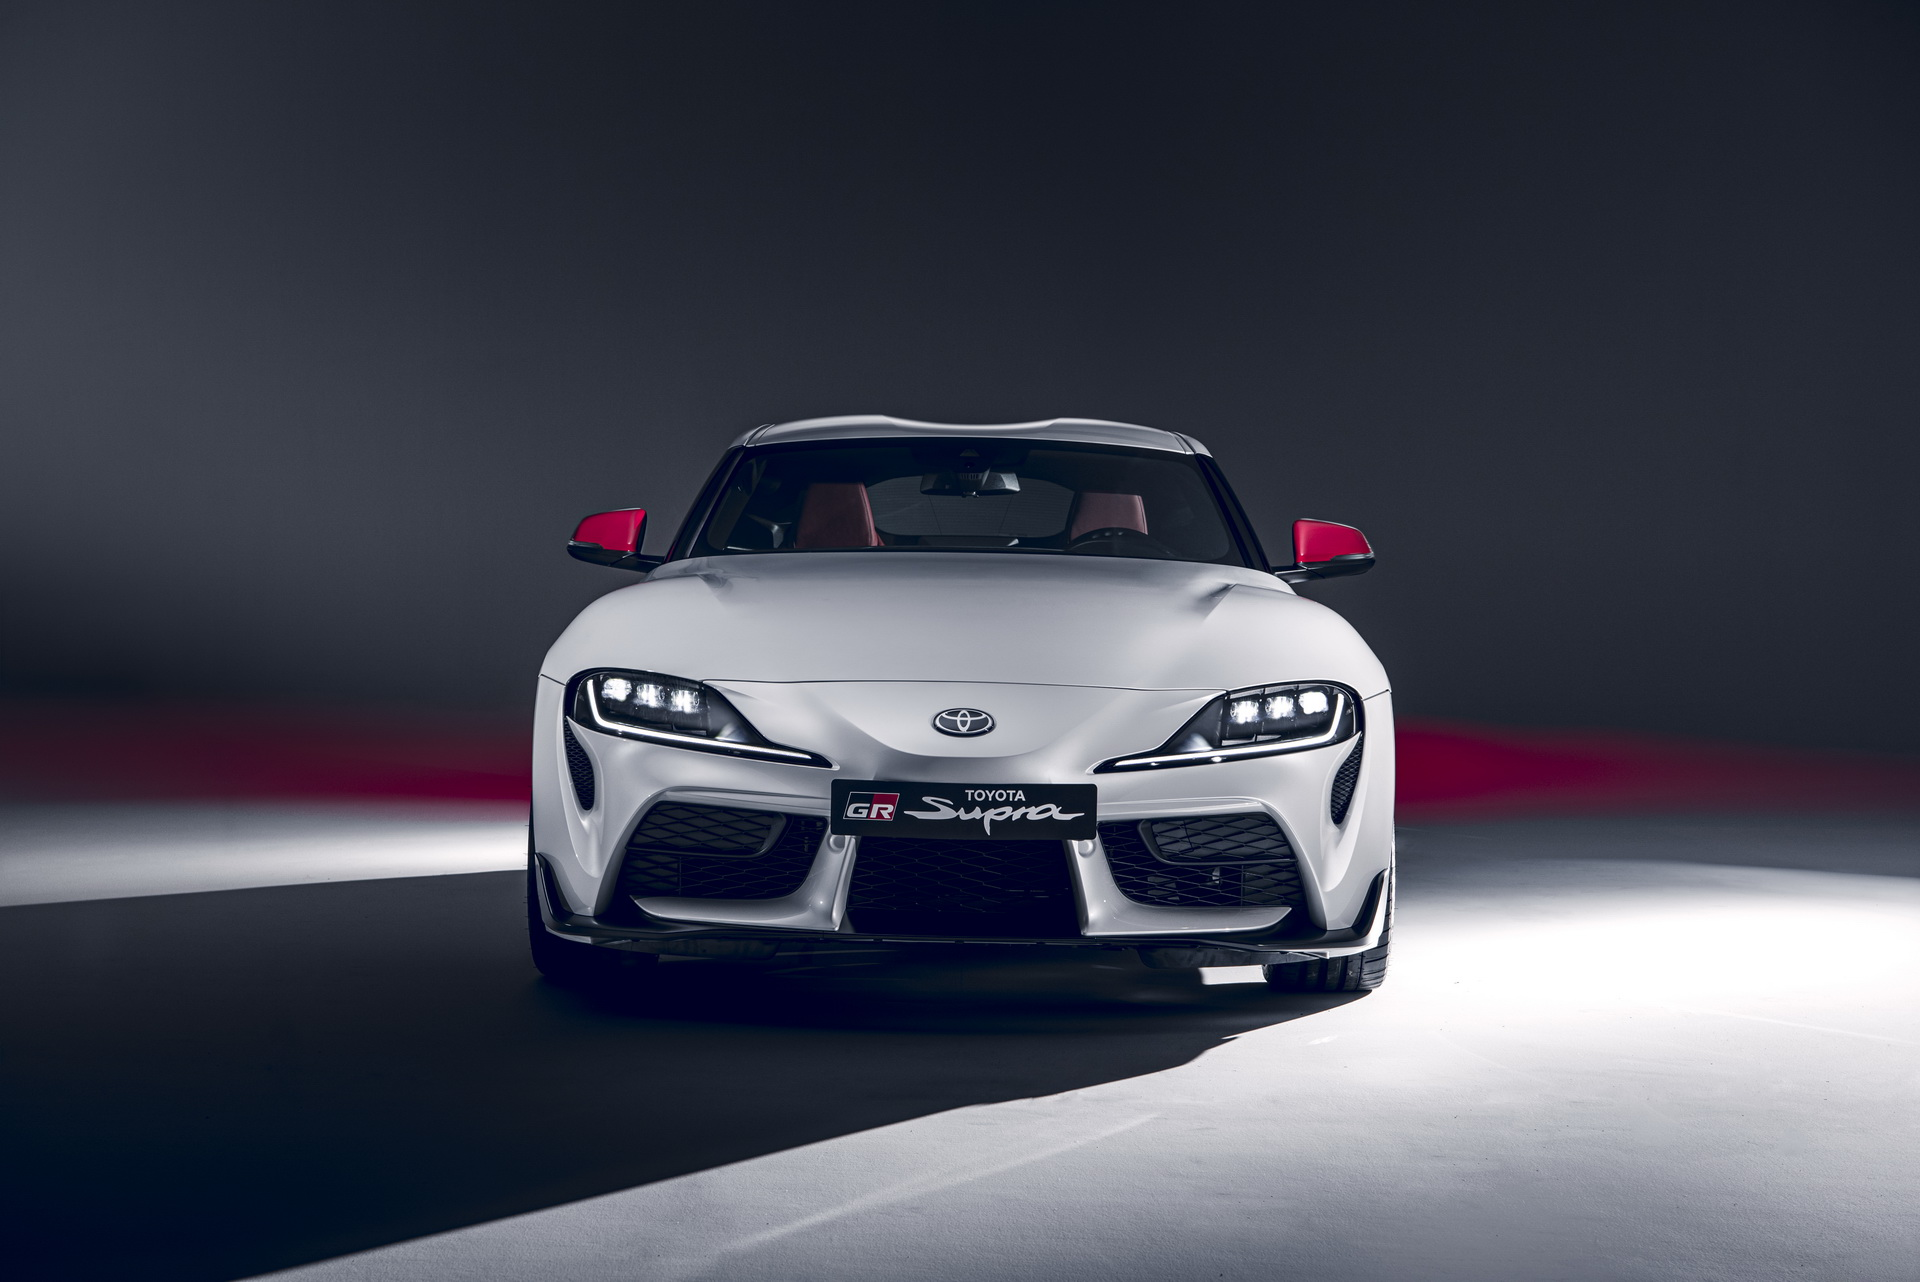 2020 toyota gr supra with turbo 20 liter engine now available in europe 140326 1